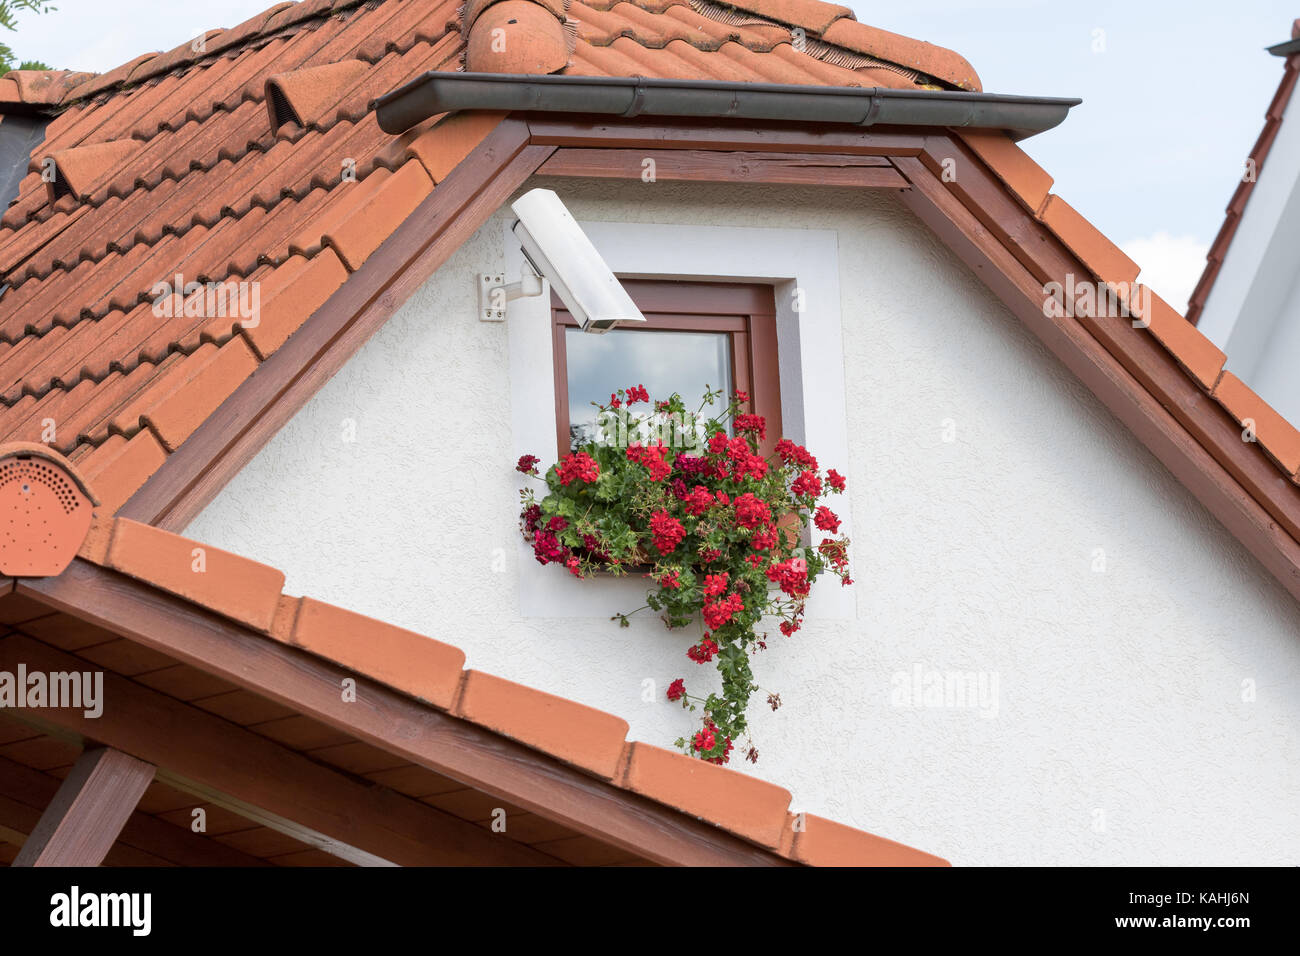 Cesky Krumlov, Czech Republic - August 17, 2017:Camera installed on a wall of a home with a small window and flowers - Stock Image